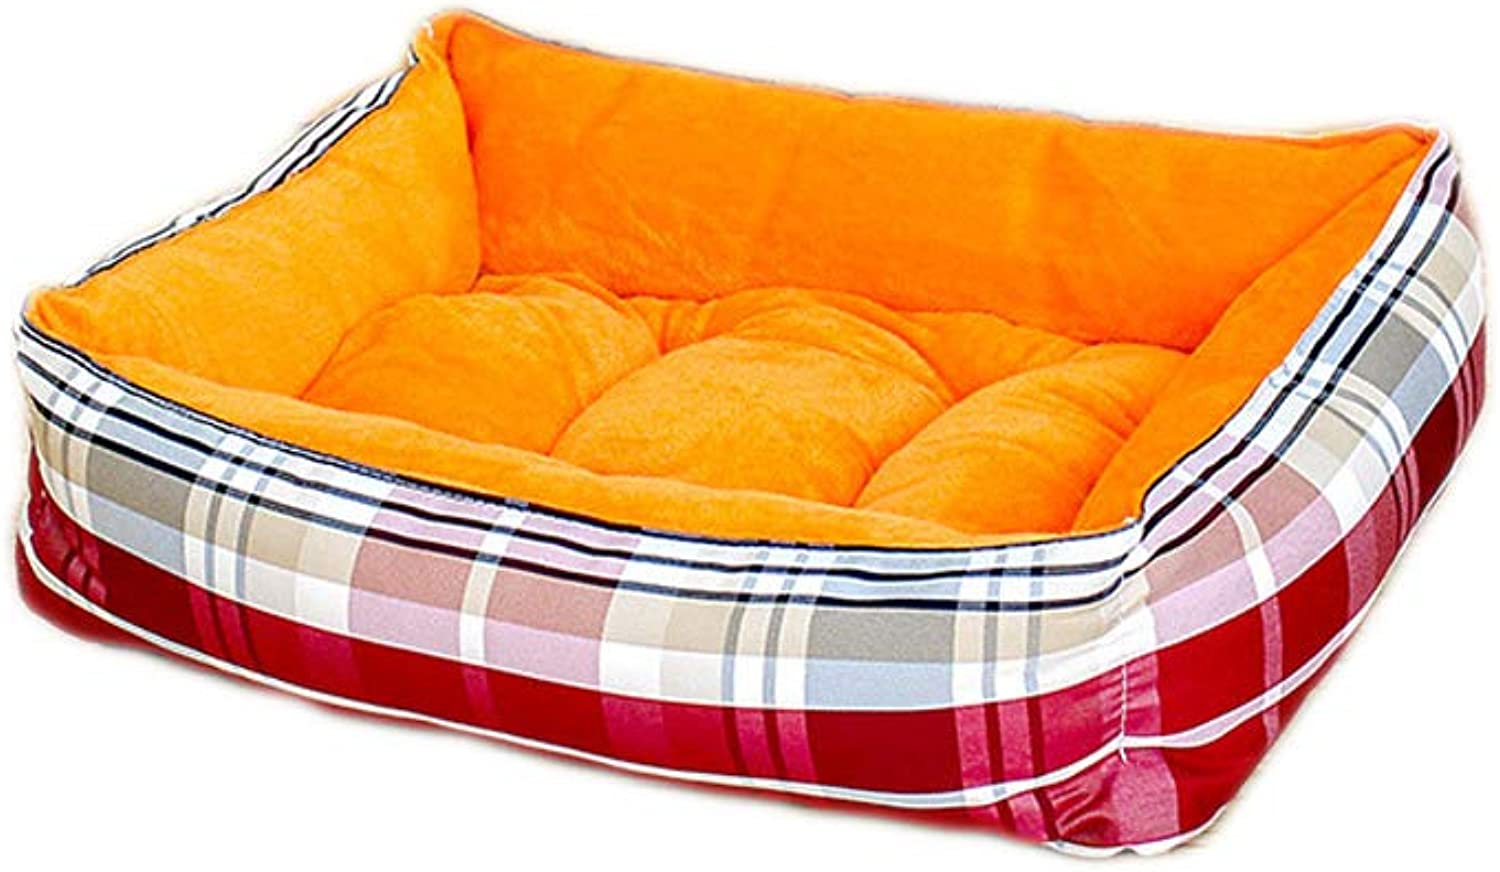 Four Season Universal Pet Mat, Elasticity Pp Filling Cotton Four Sides Uplifted, Independent Inner Cushion Summer Refreshing Warm Winter Comfortable,orange,M